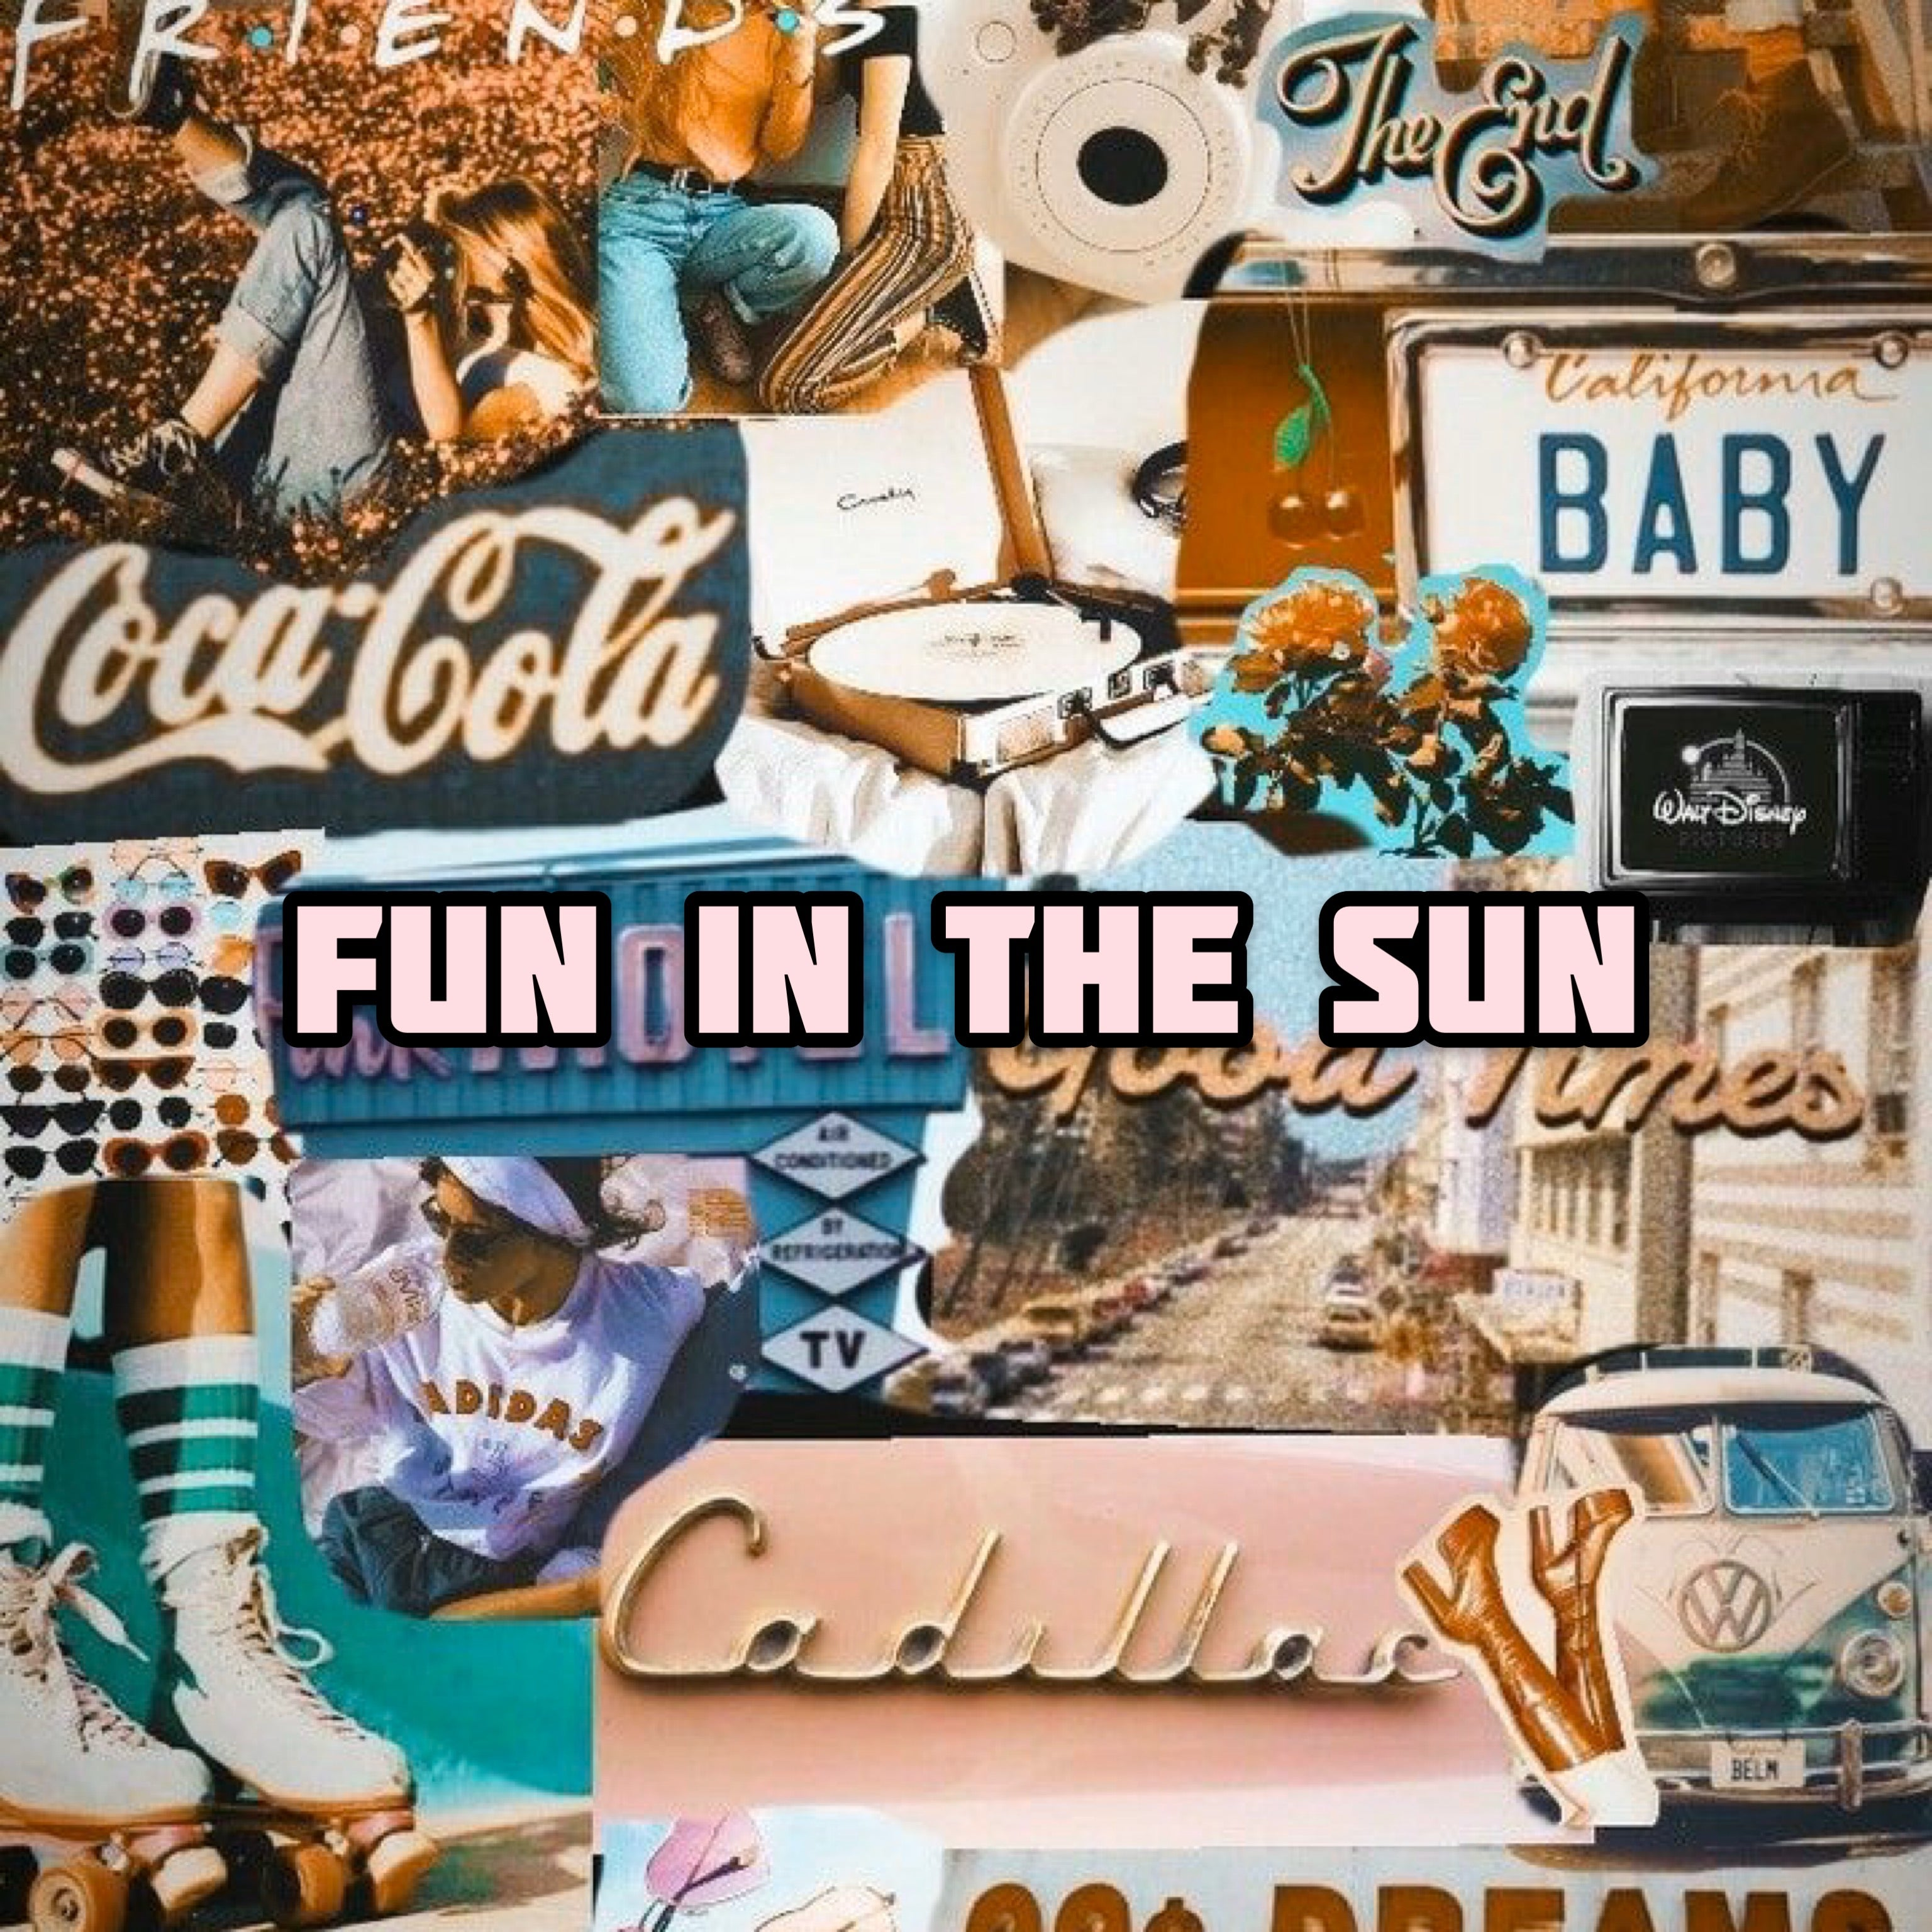 Fun in the Sun - Candy Coat